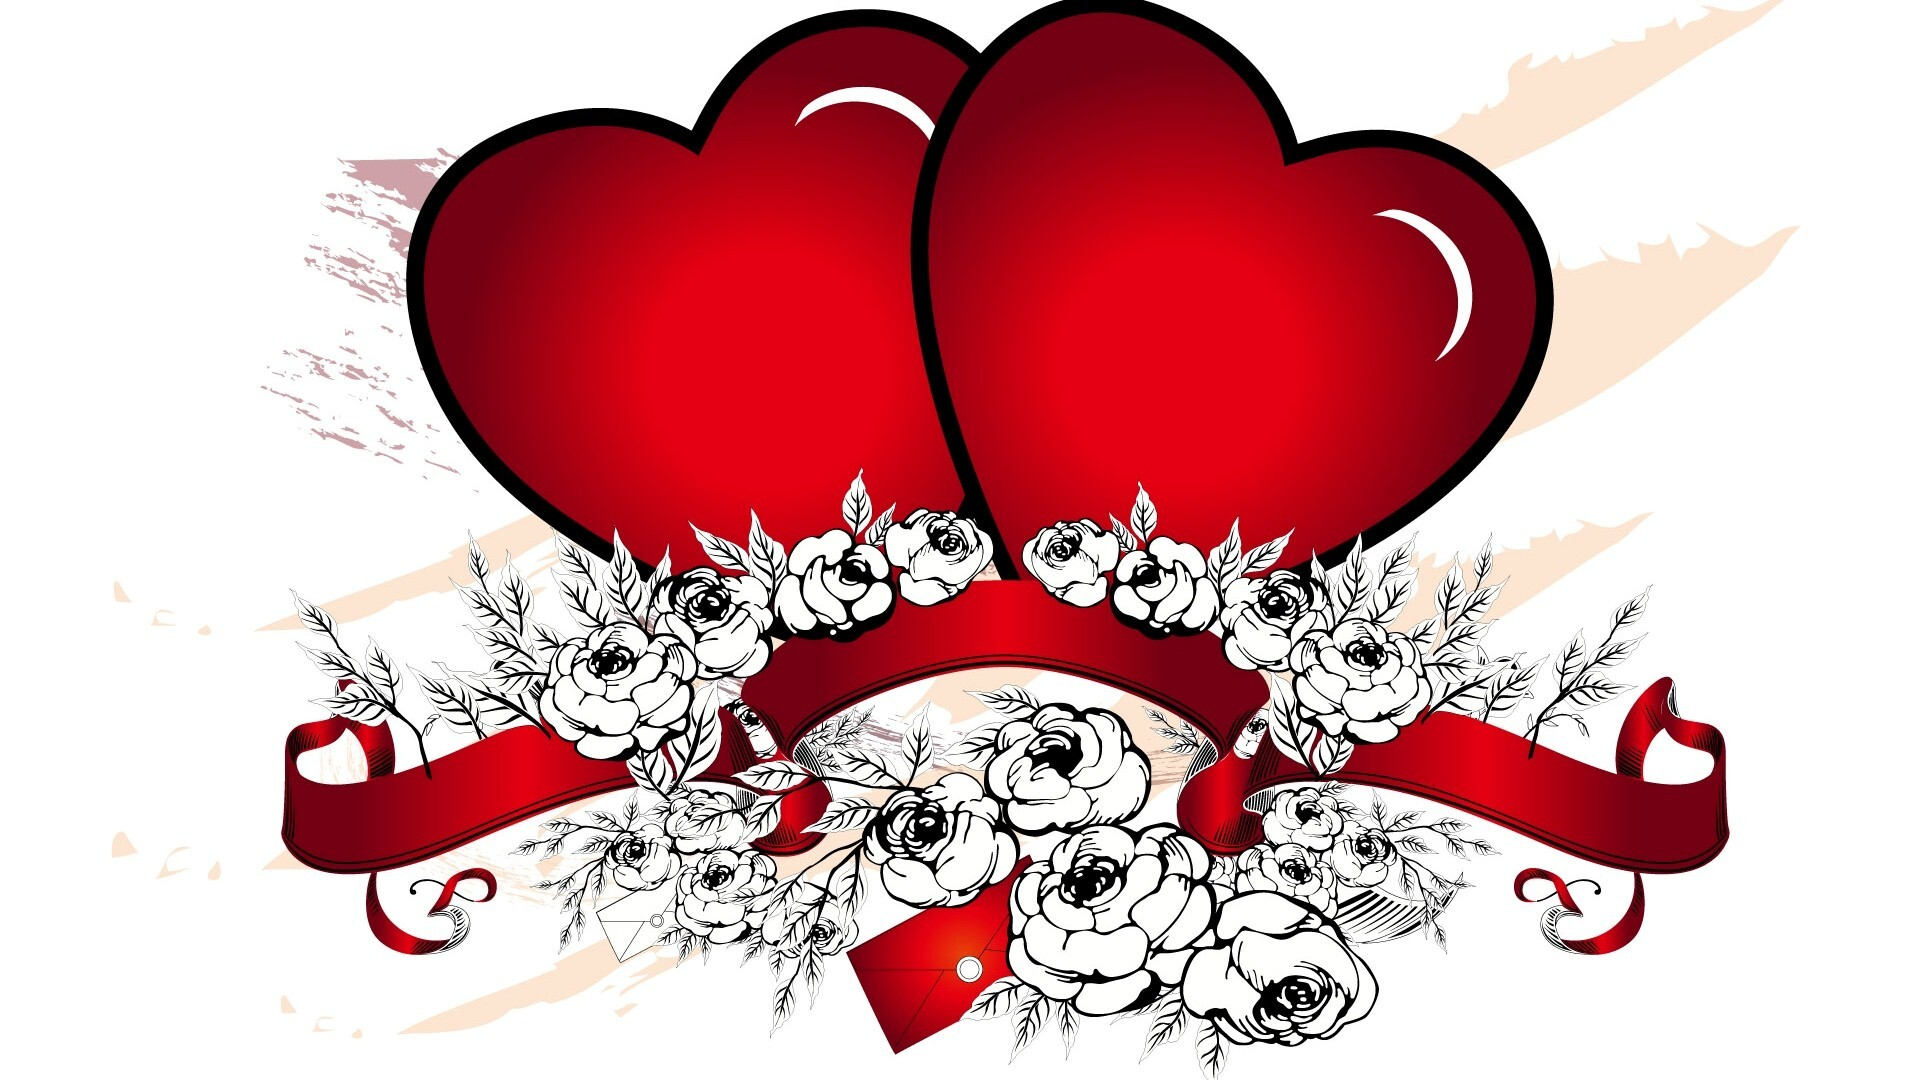 beautiful two red heart vector design hd laptop background